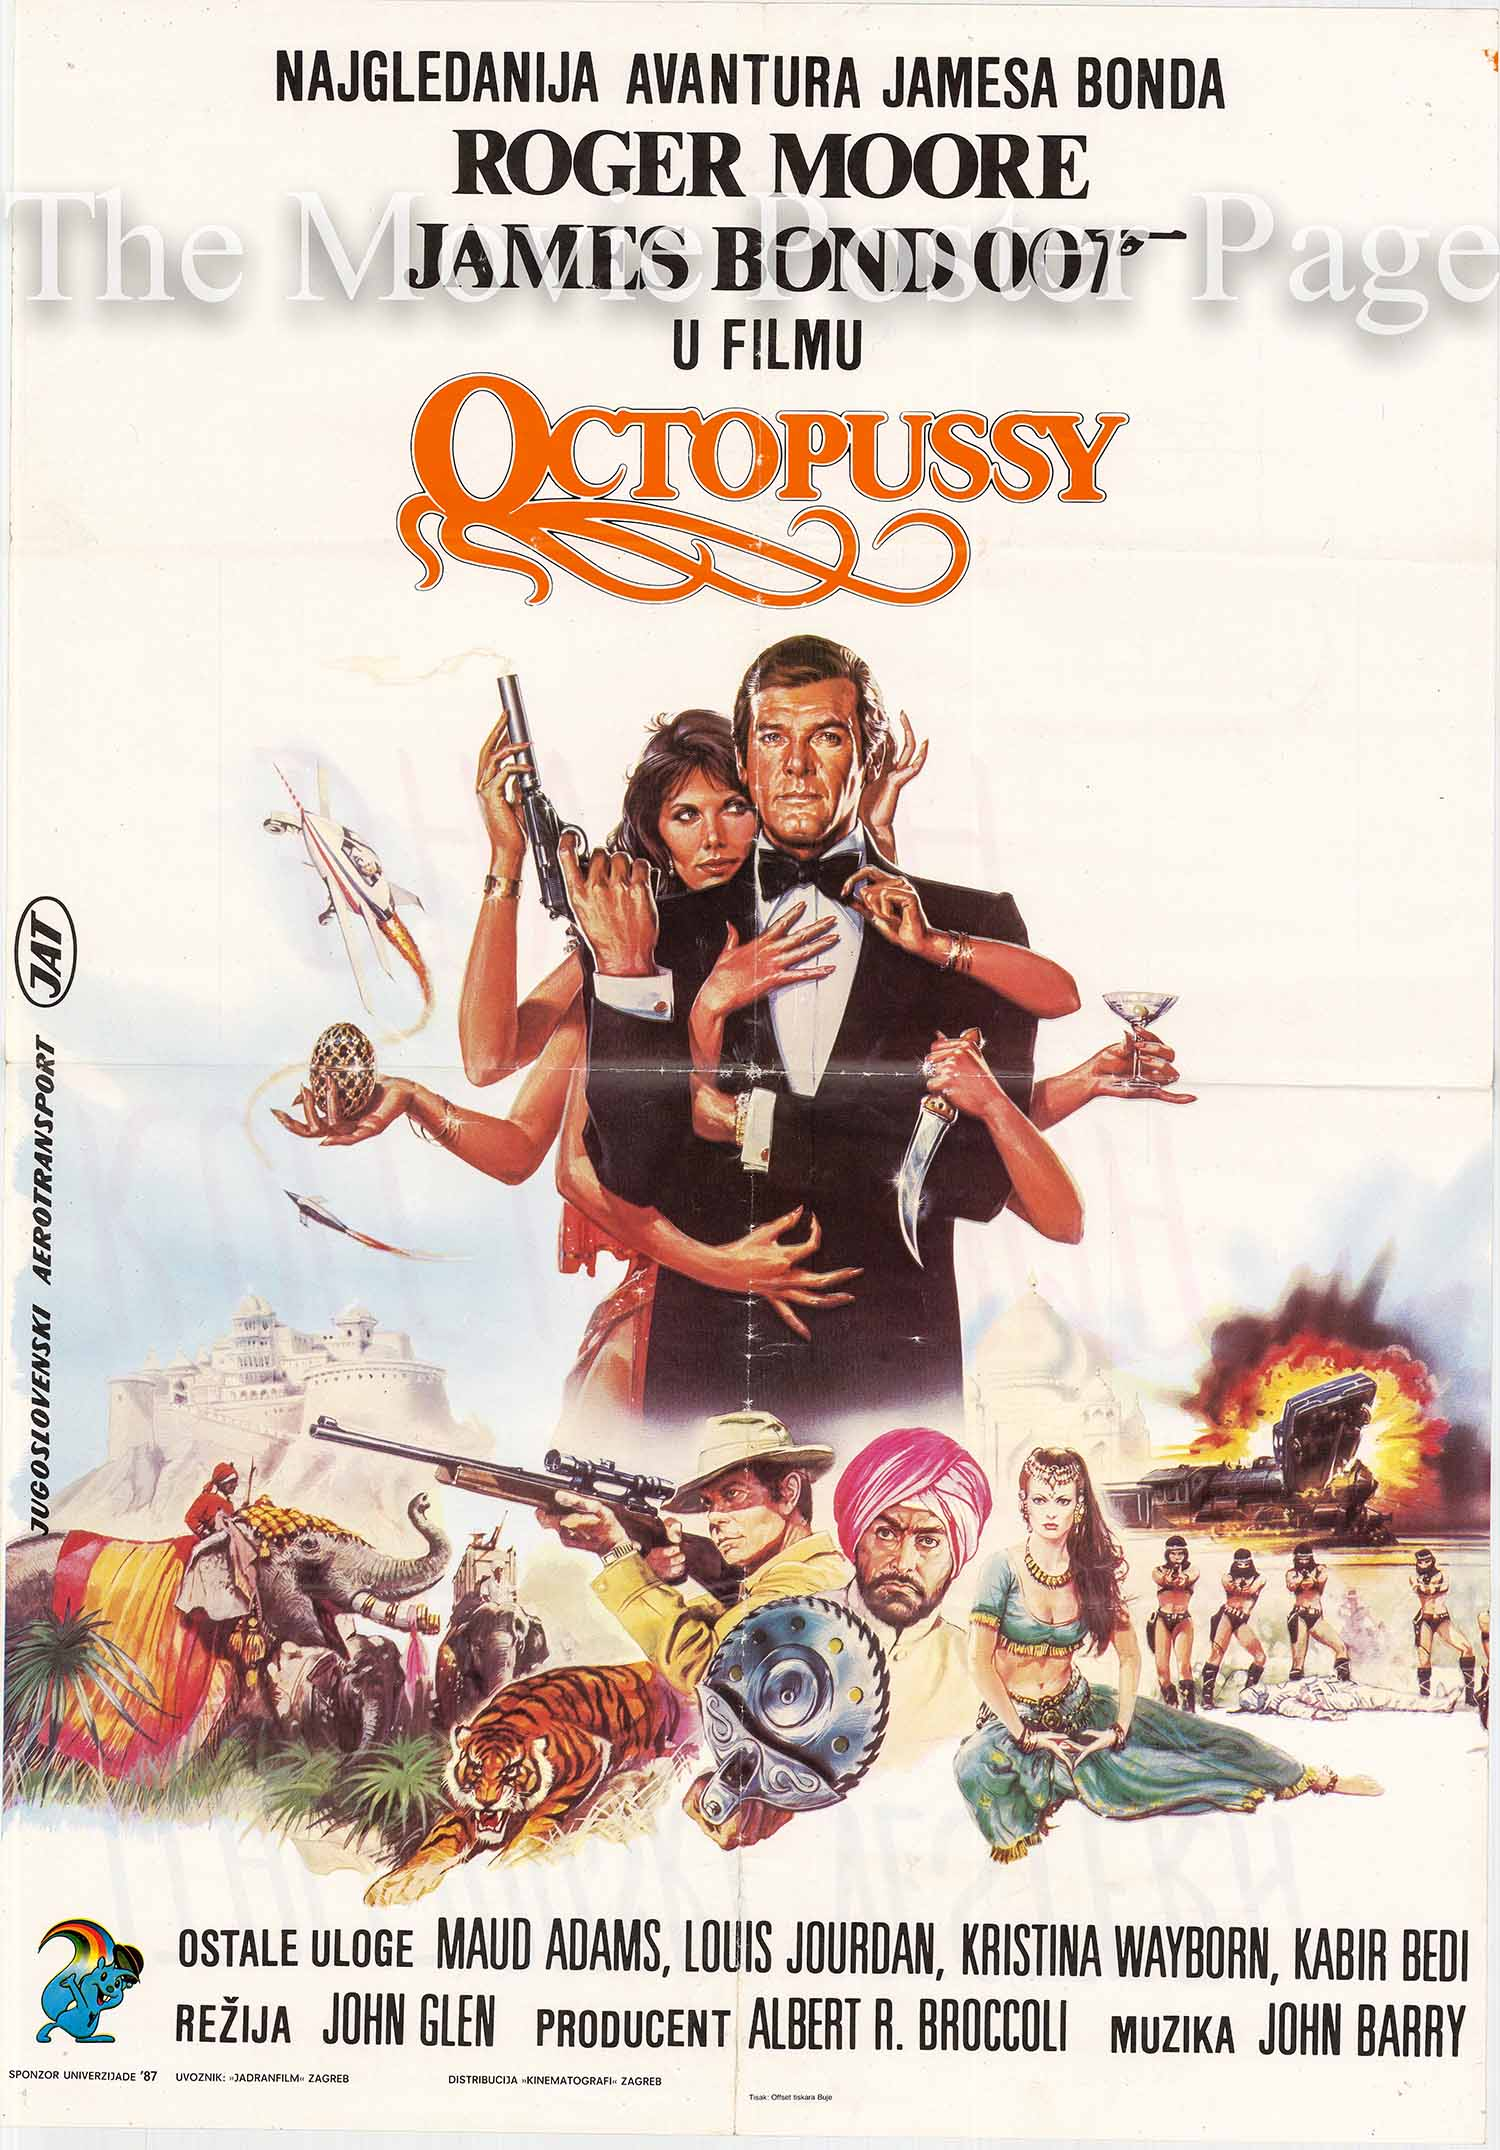 Pictured is a Yugoslavian promotional poster made for the 1983 John Glen film Octopussy starring Roger Moore as James Bond.